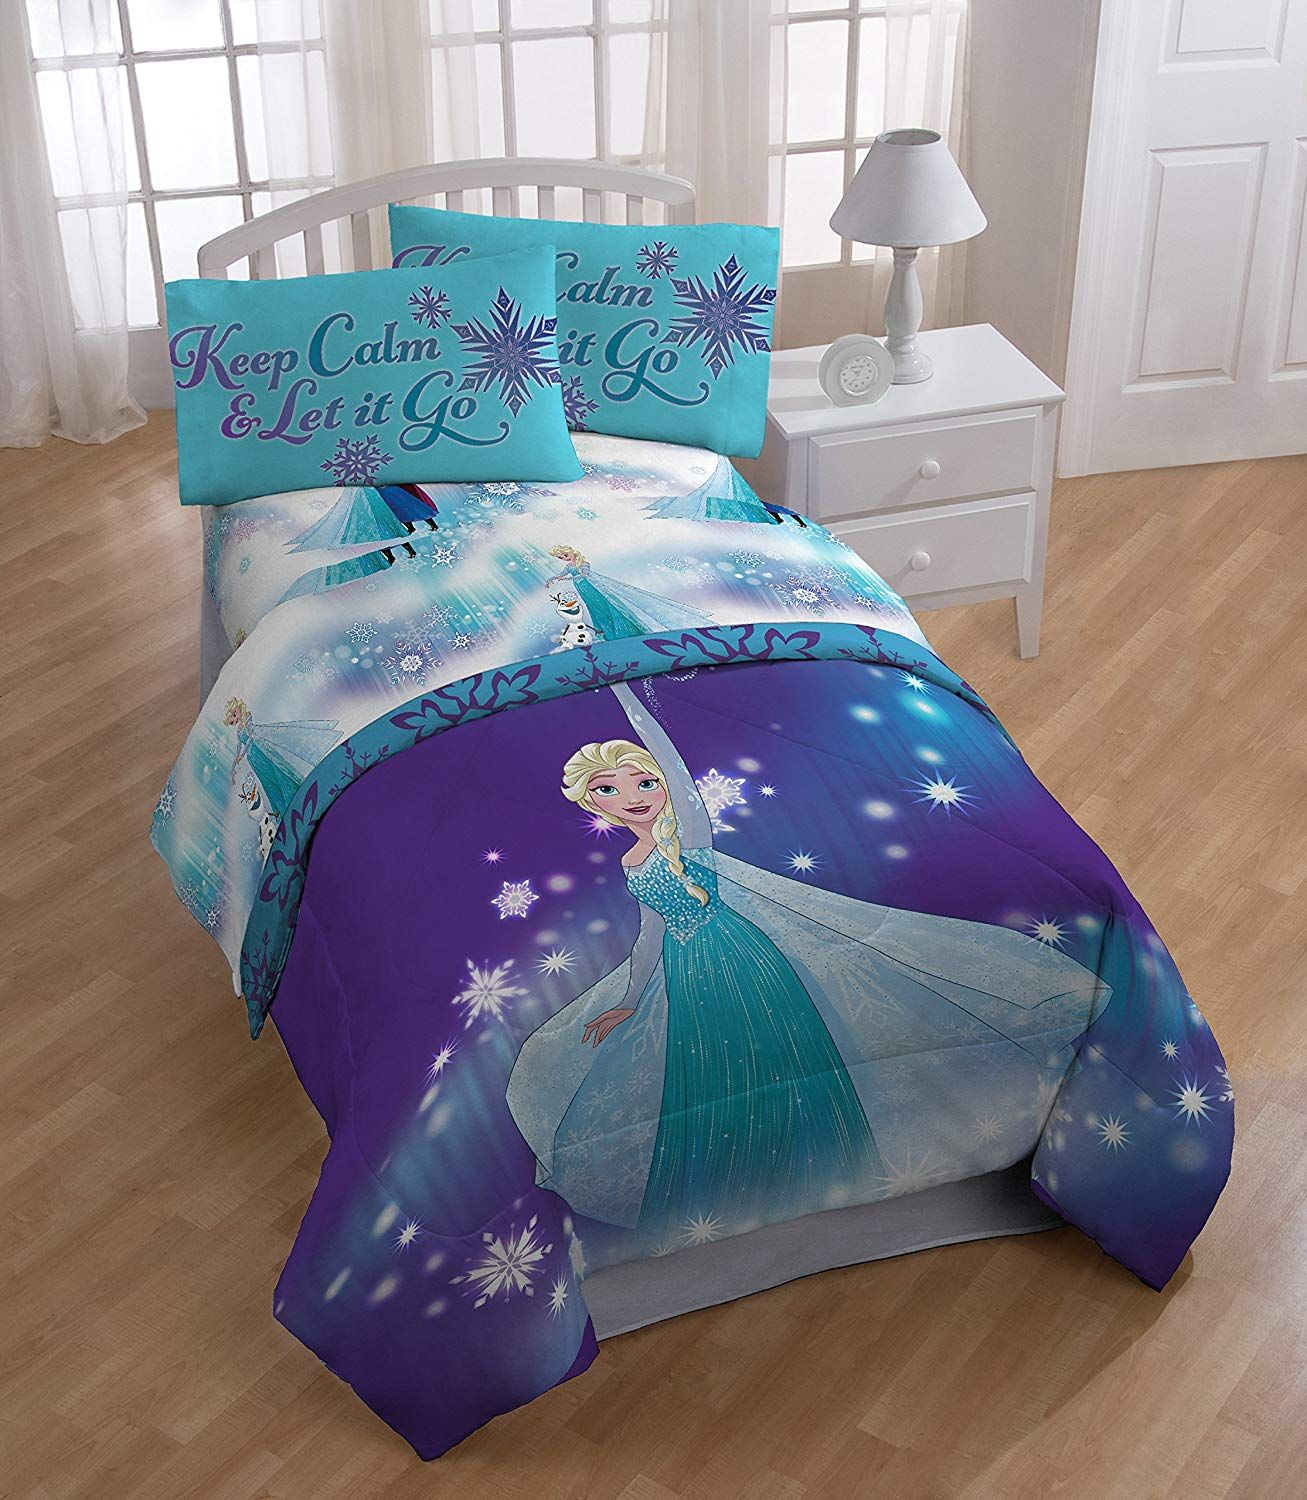 Pin By Aneela Shehryar On Baby S Cot Sheet In 2020 Bedding Sets Bed In A Bag Baby Room Design